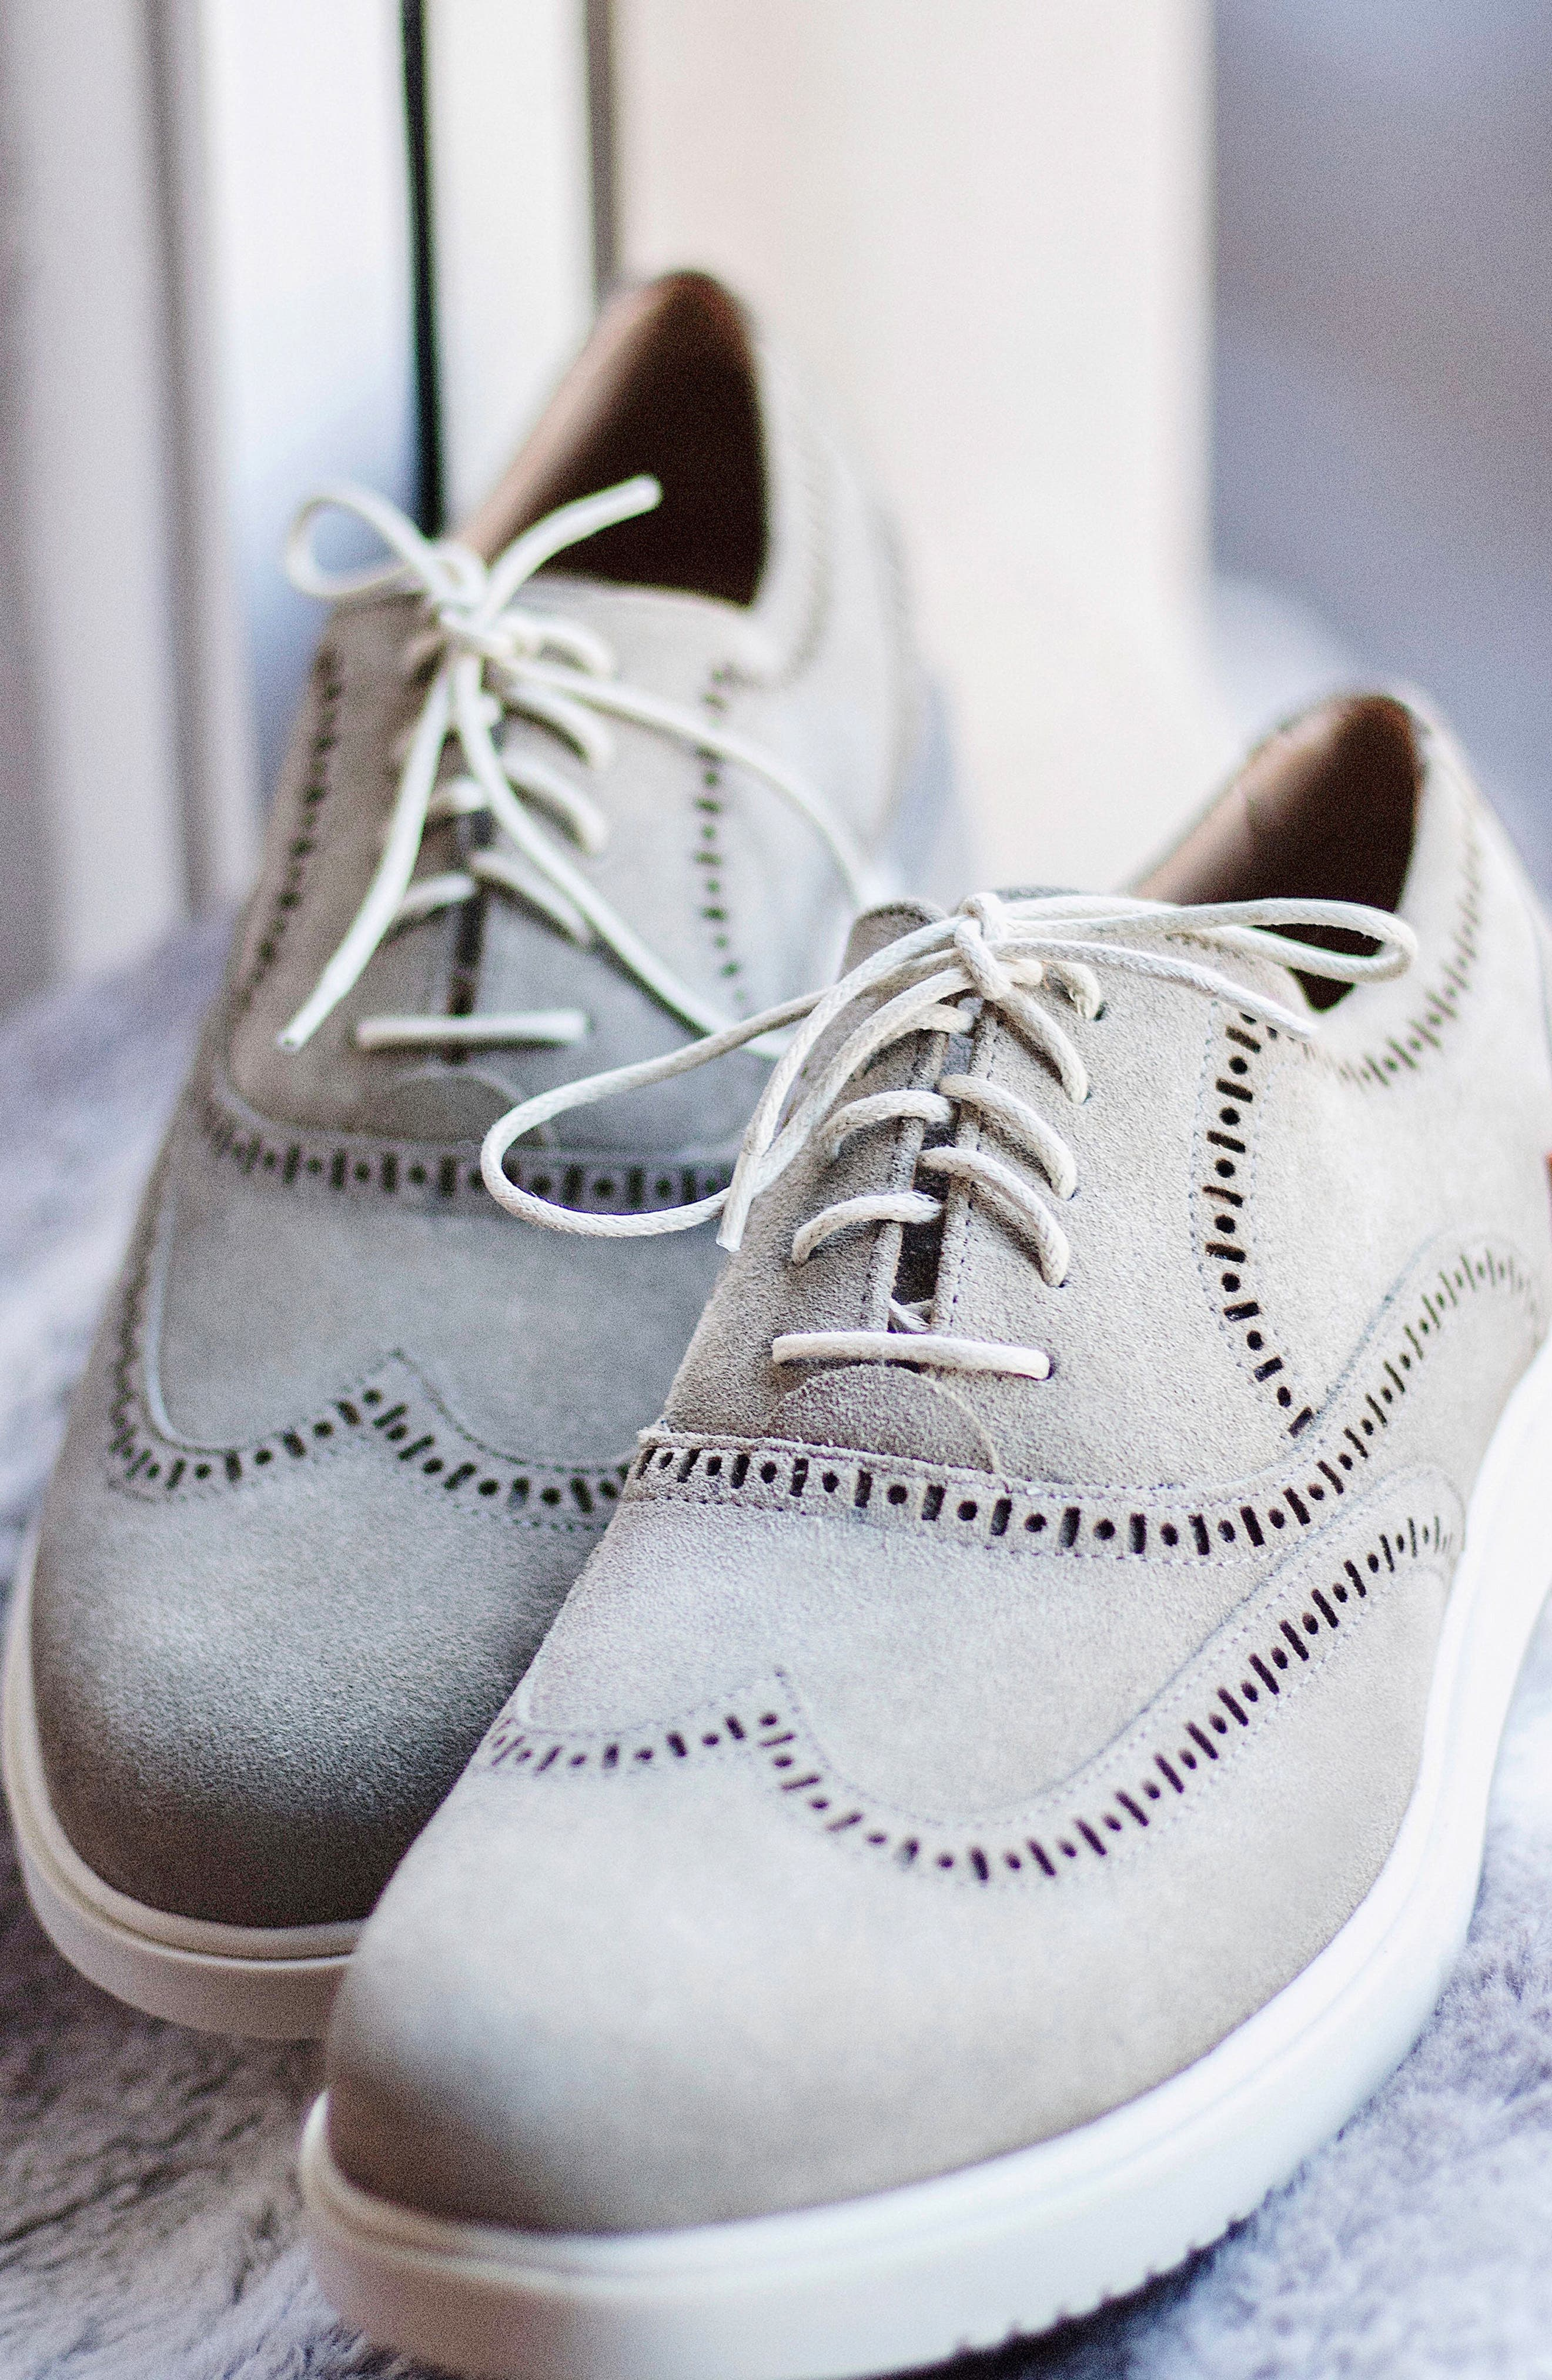 5th Ave Wingtip Sneaker,                             Alternate thumbnail 7, color,                             GREY SUEDE